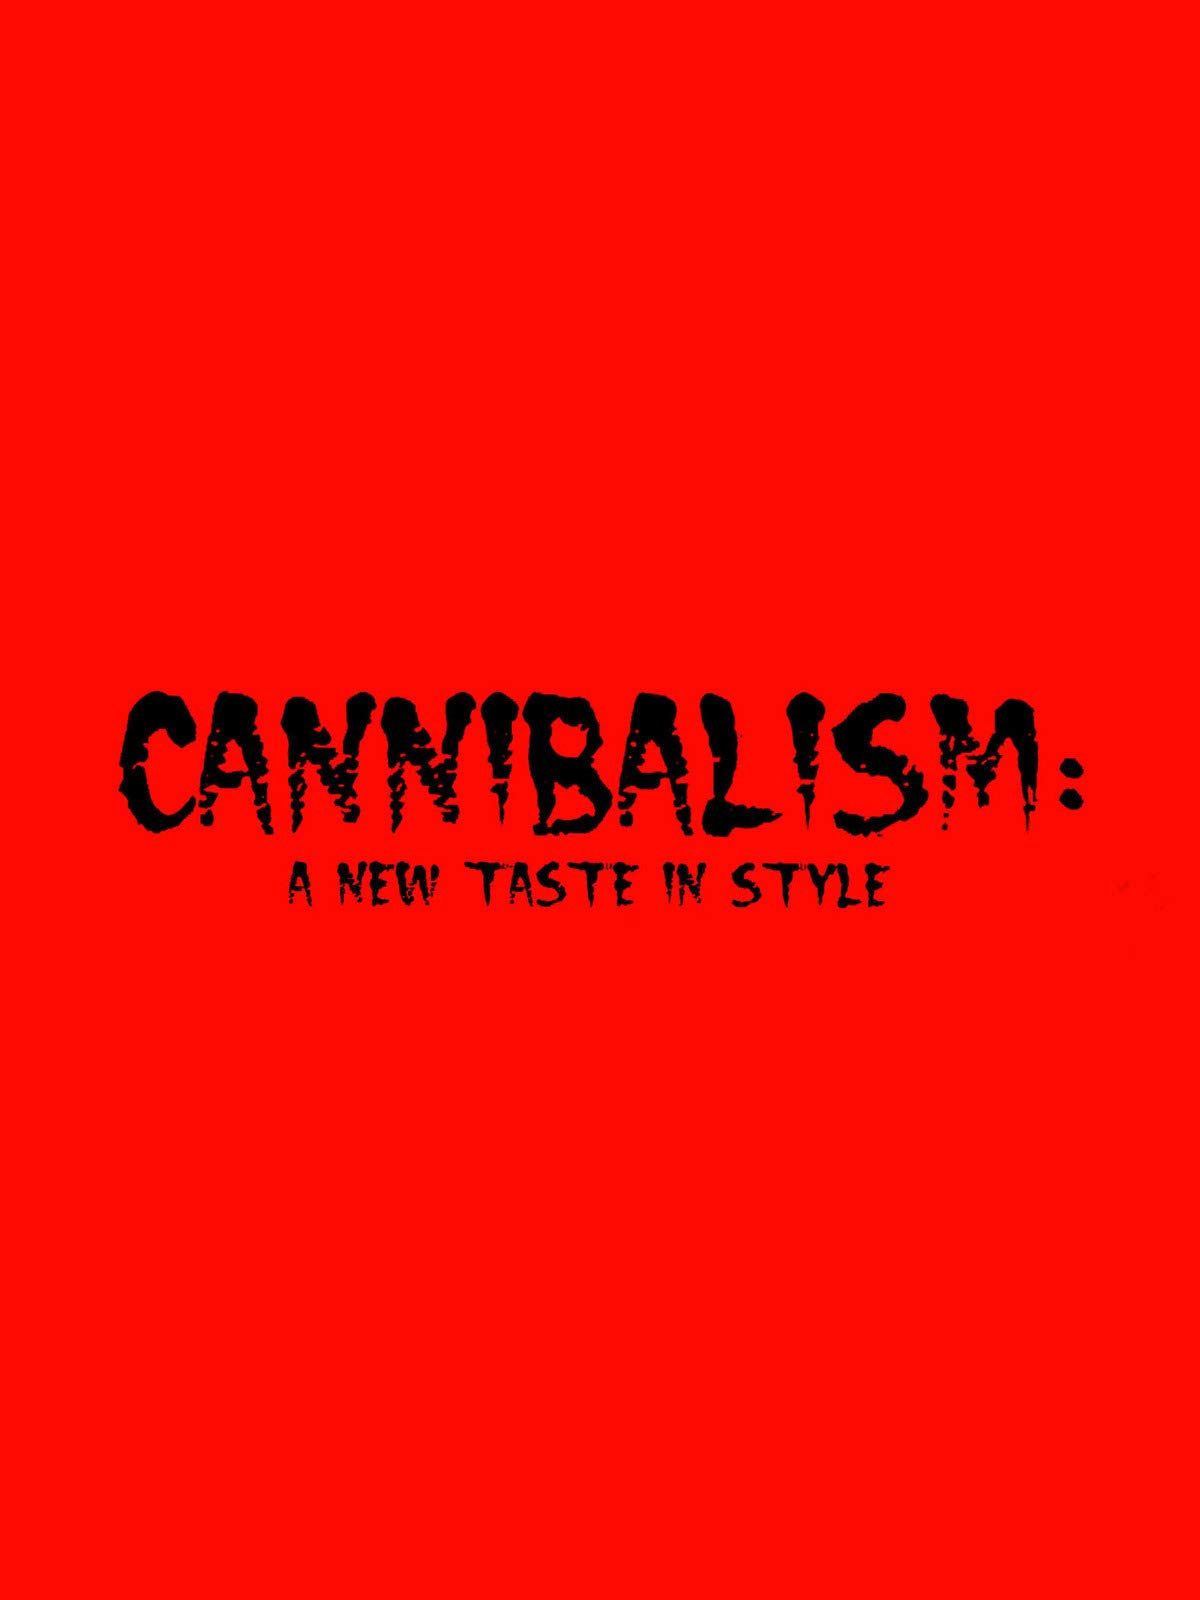 Cannibalism: A New Taste In Style